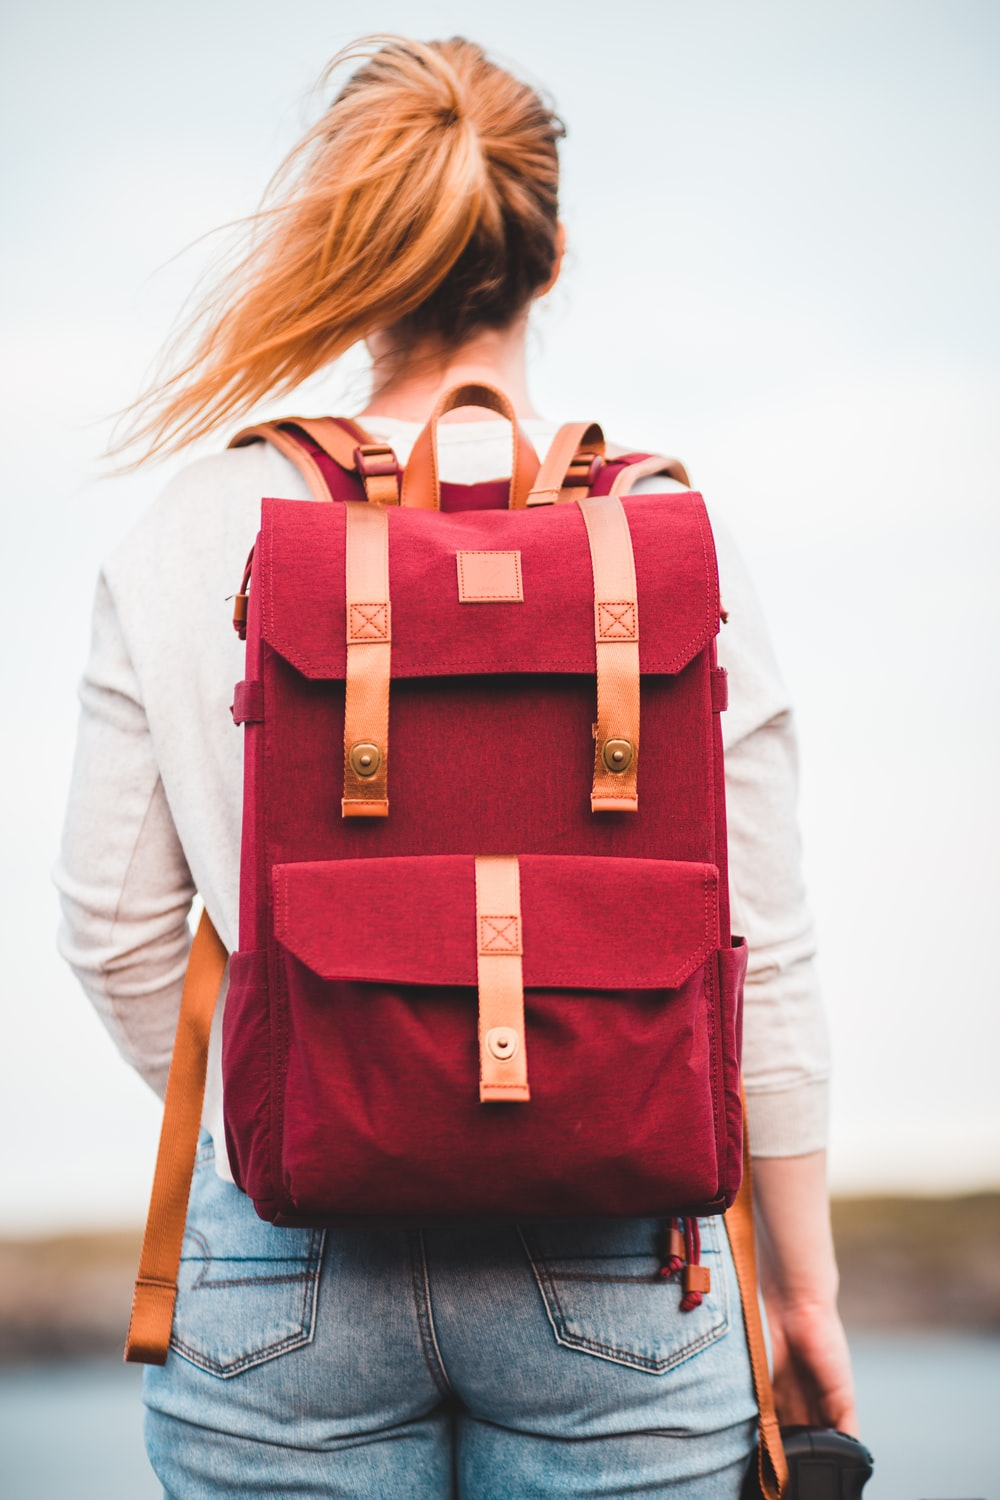 woman in white long sleeve shirt with red and black backpack